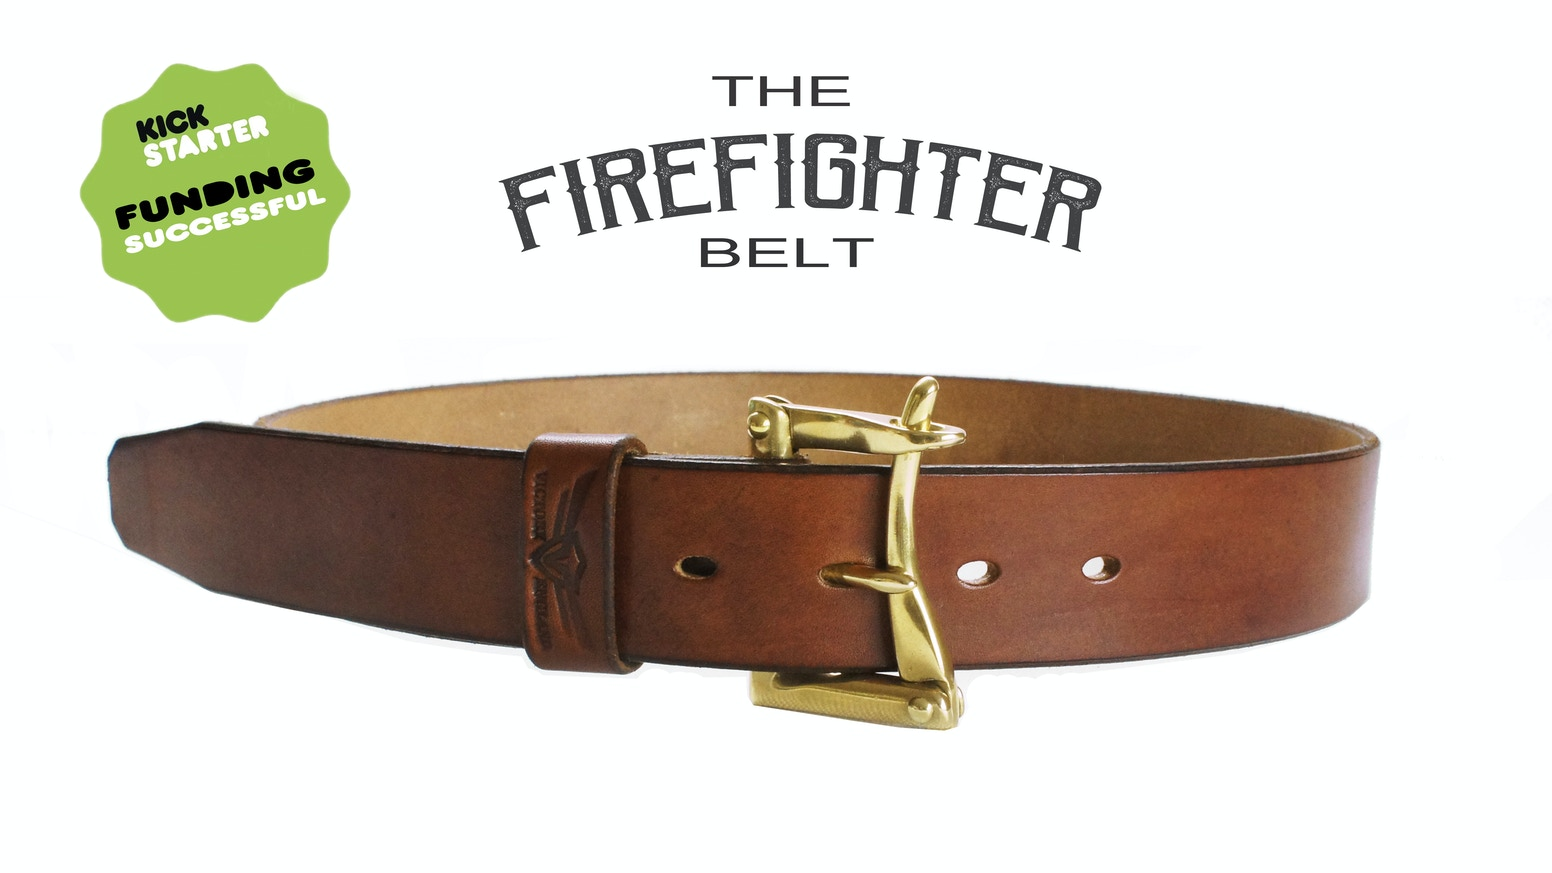 Unique quick-release buckle, foundry-made in England, teamed with the finest oak-bark tanned bridle leather & handcrafted to perfection